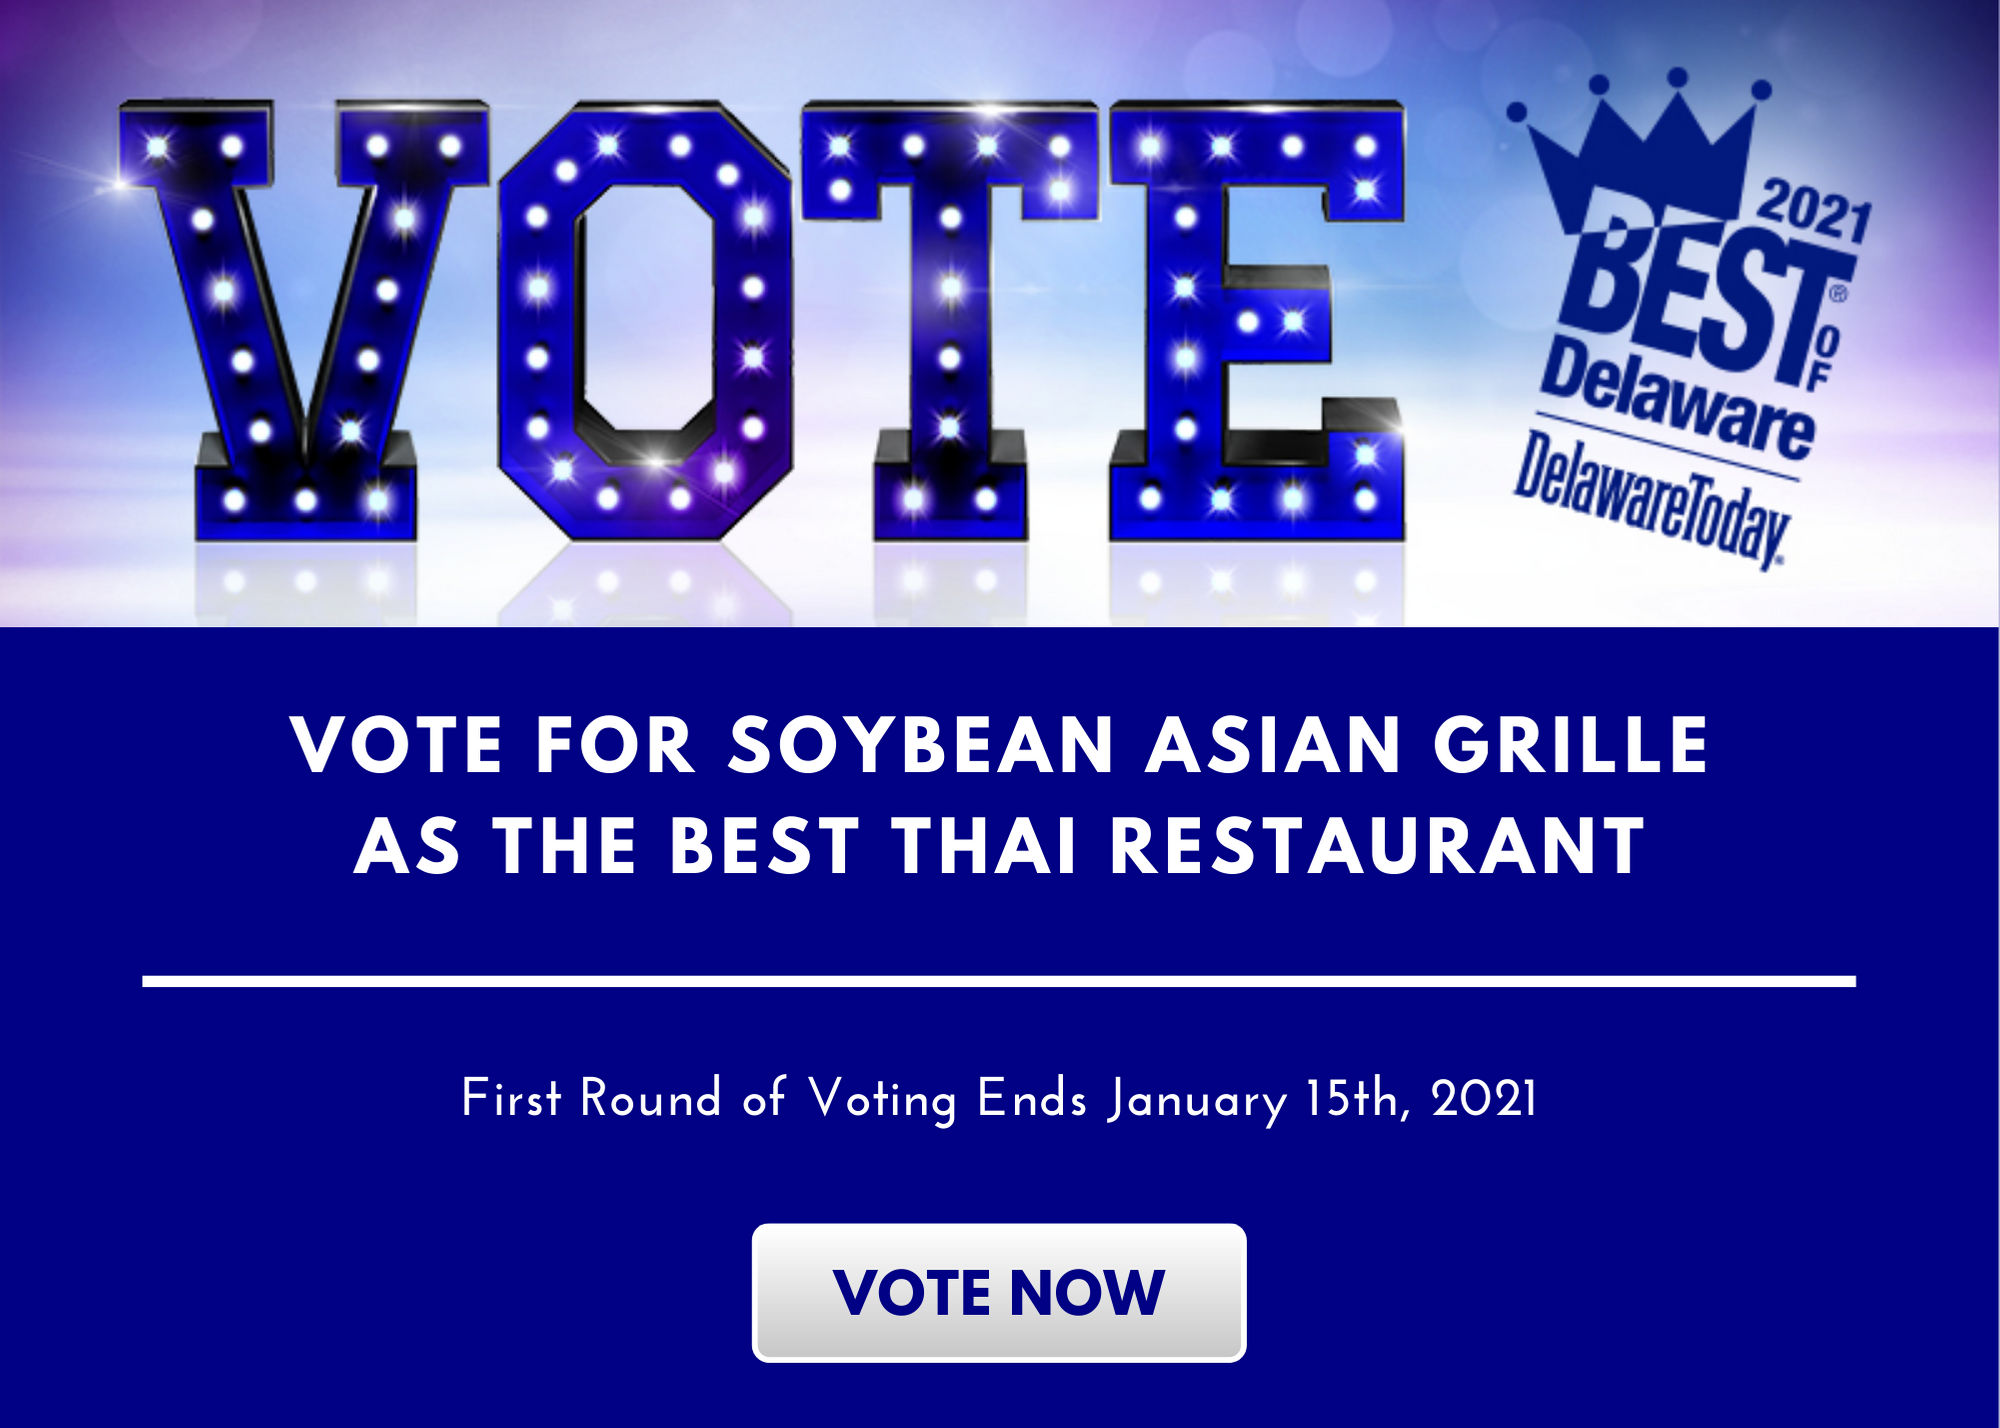 Vote for Soybean Asian Grille in the Best of Delaware 2021